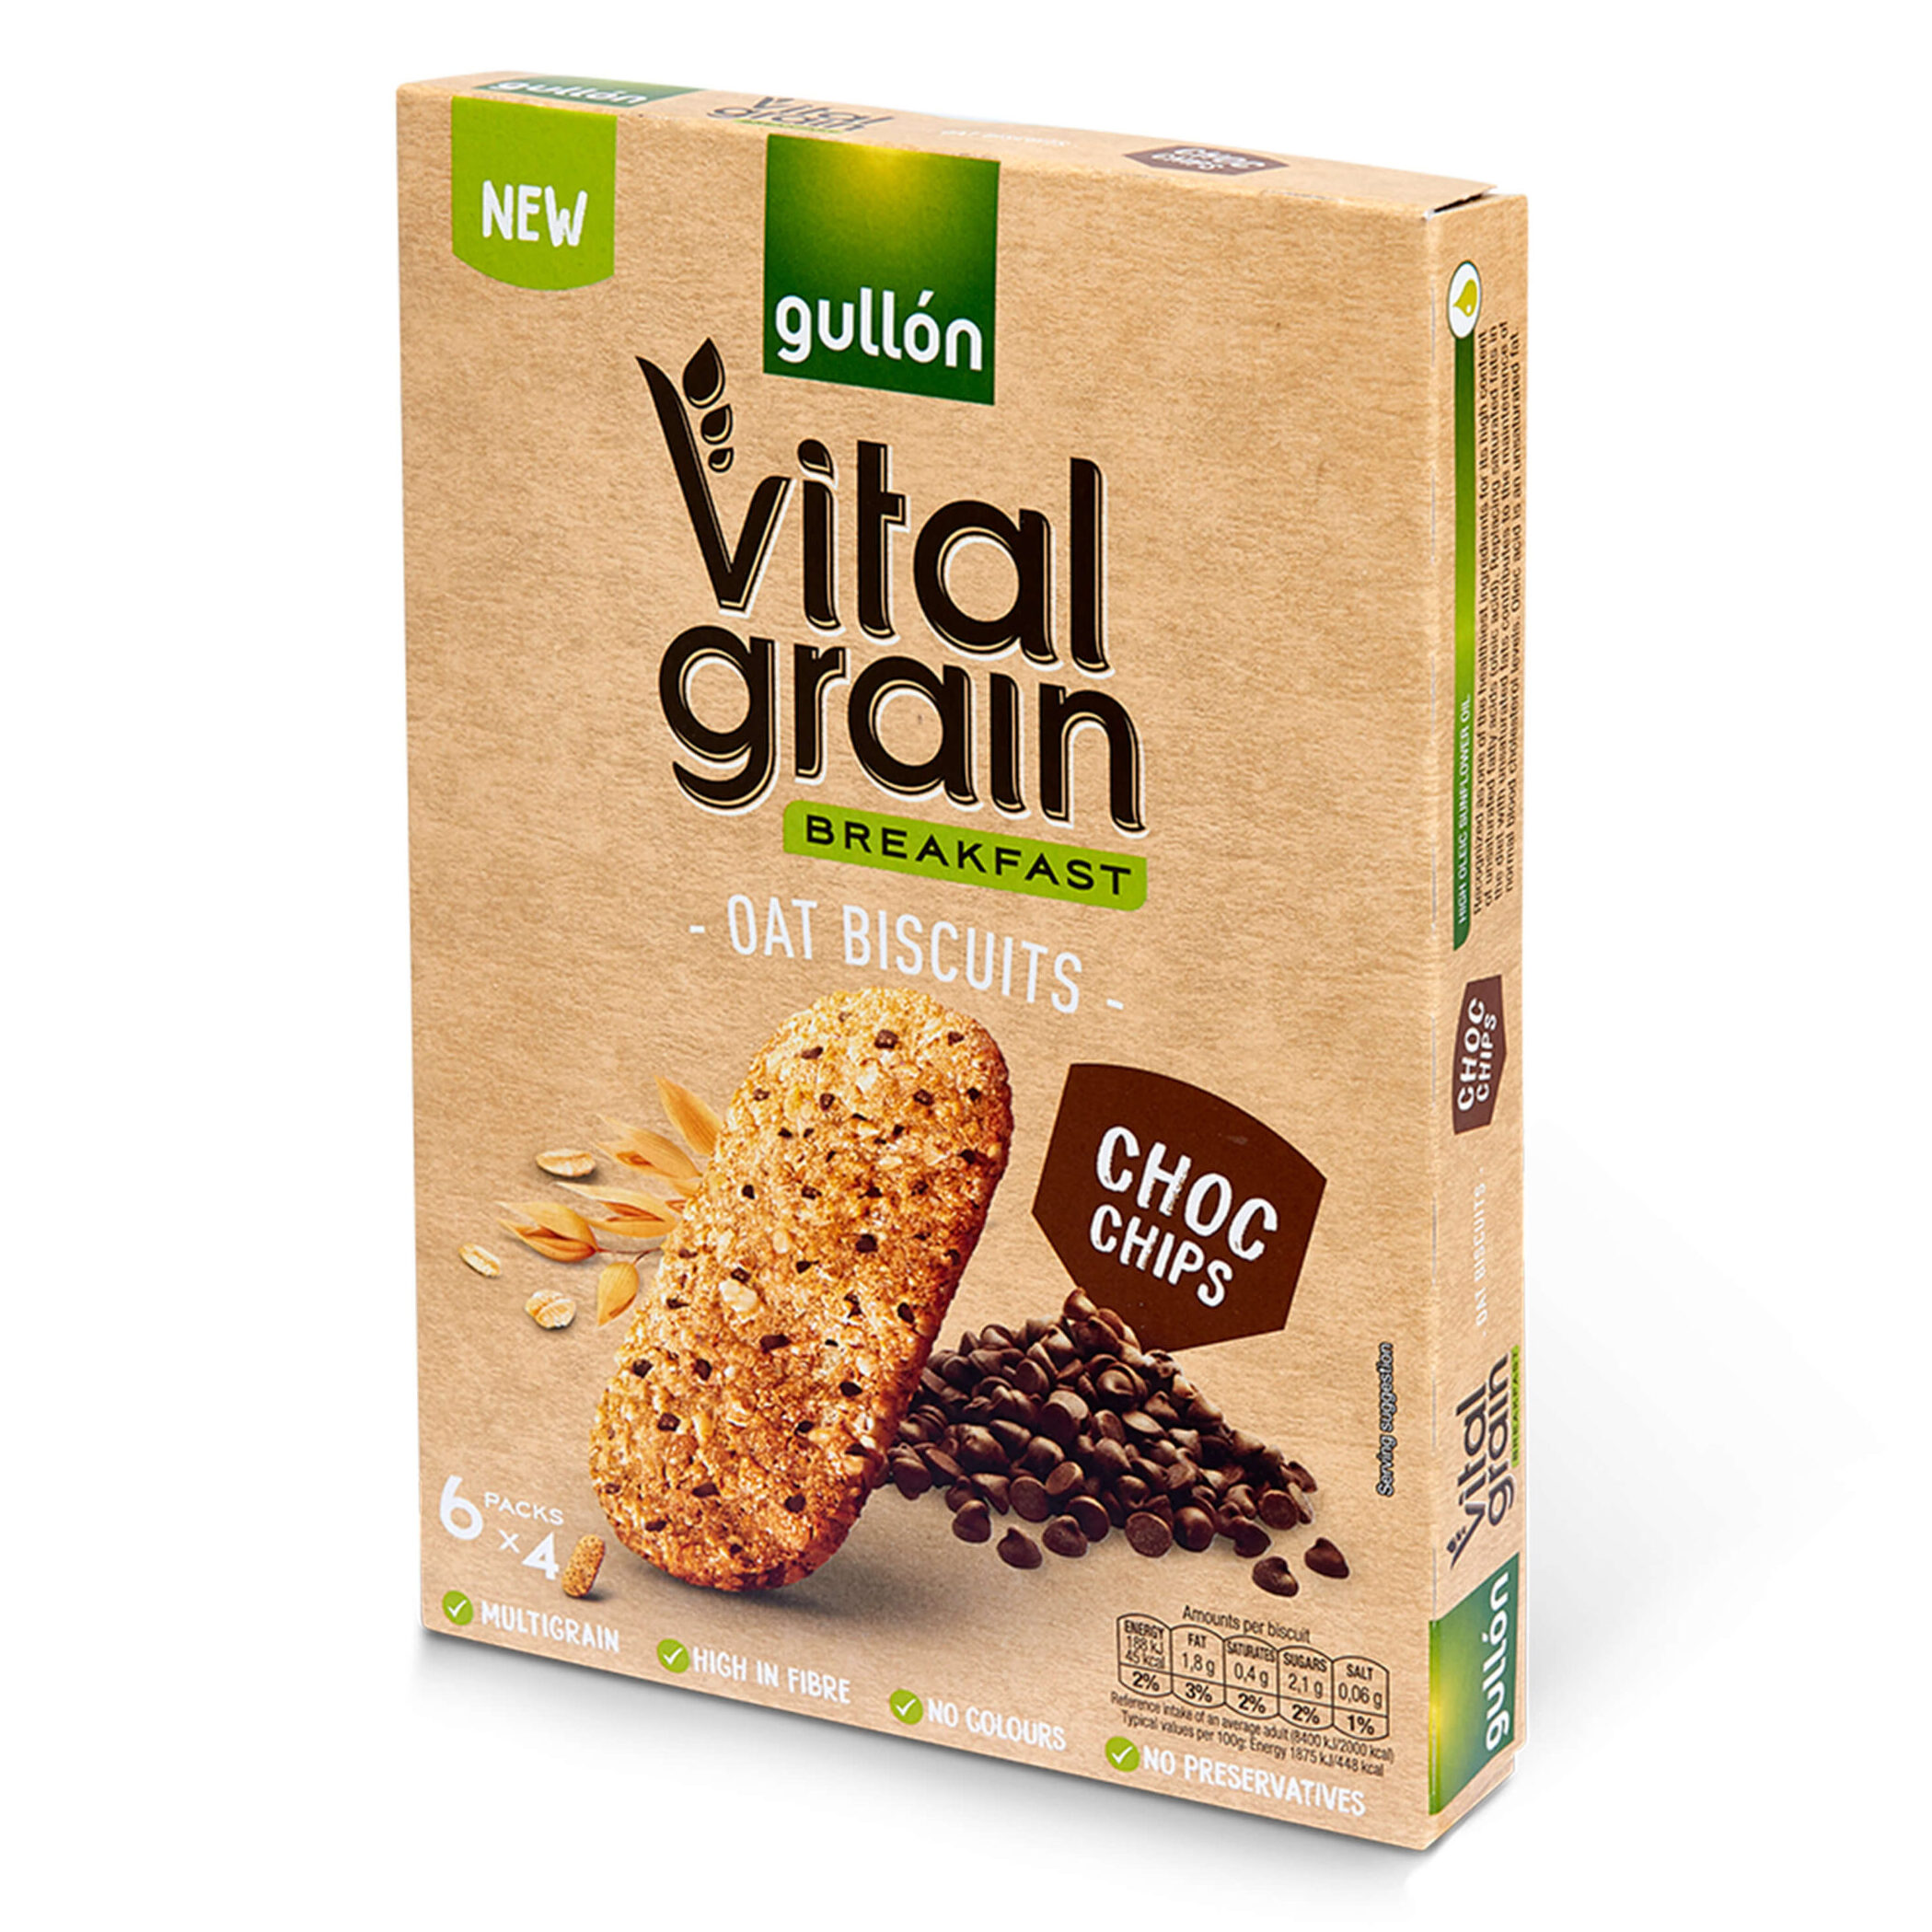 Gullón Vital Grain Oat Biscuits with Chocolate Chips 240g (6 Packs)